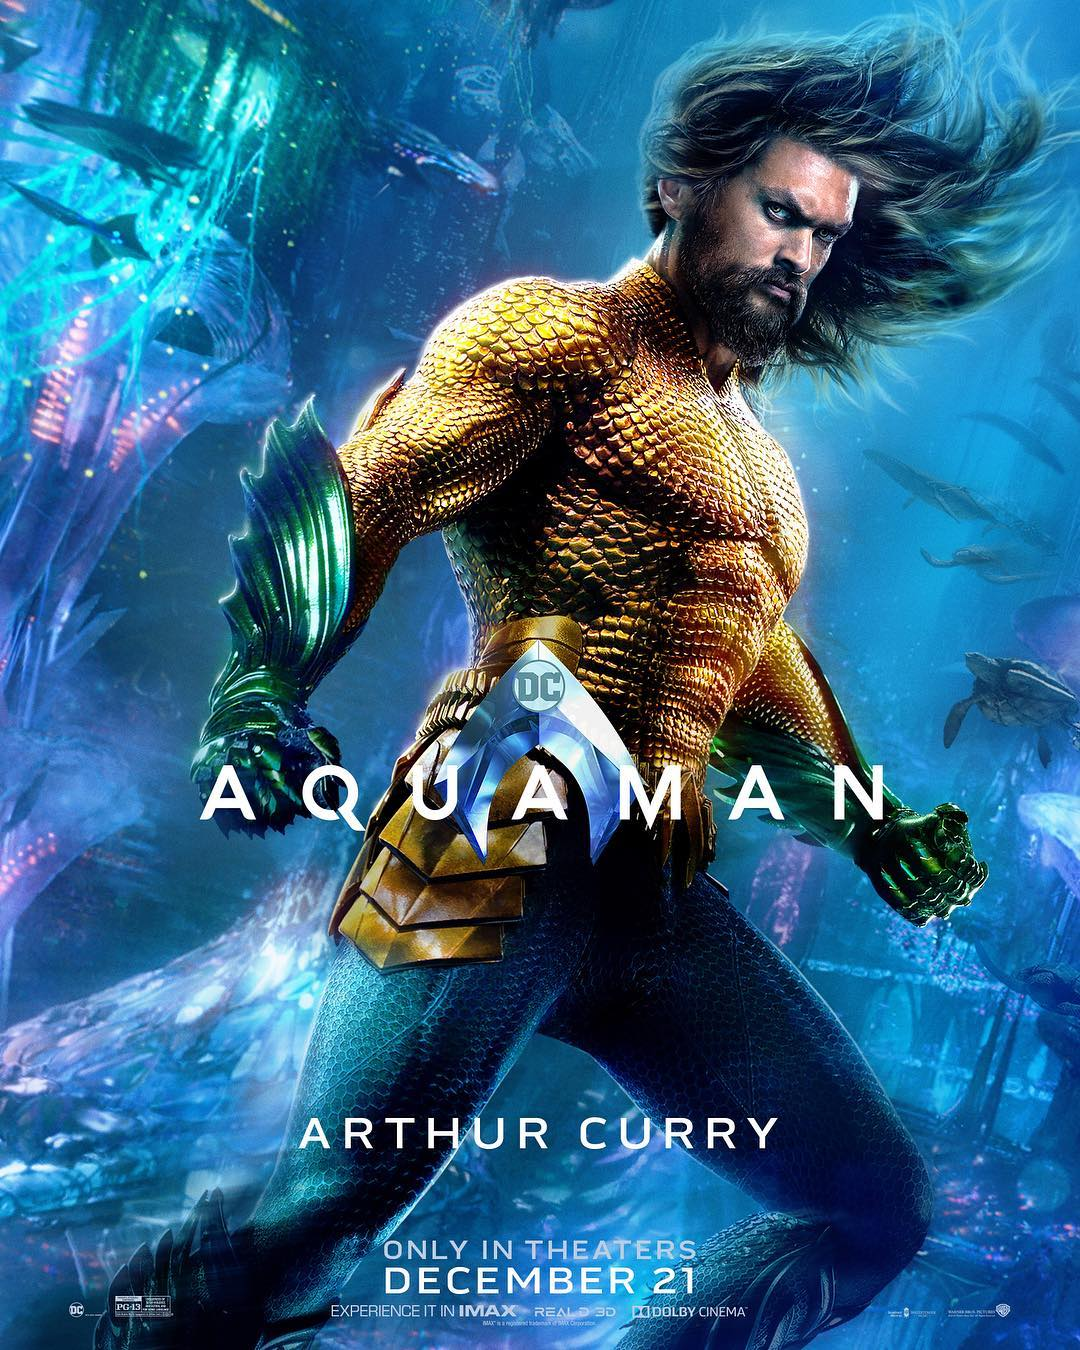 Jason Momoa is Arthur Curry on a new Aquaman poster.